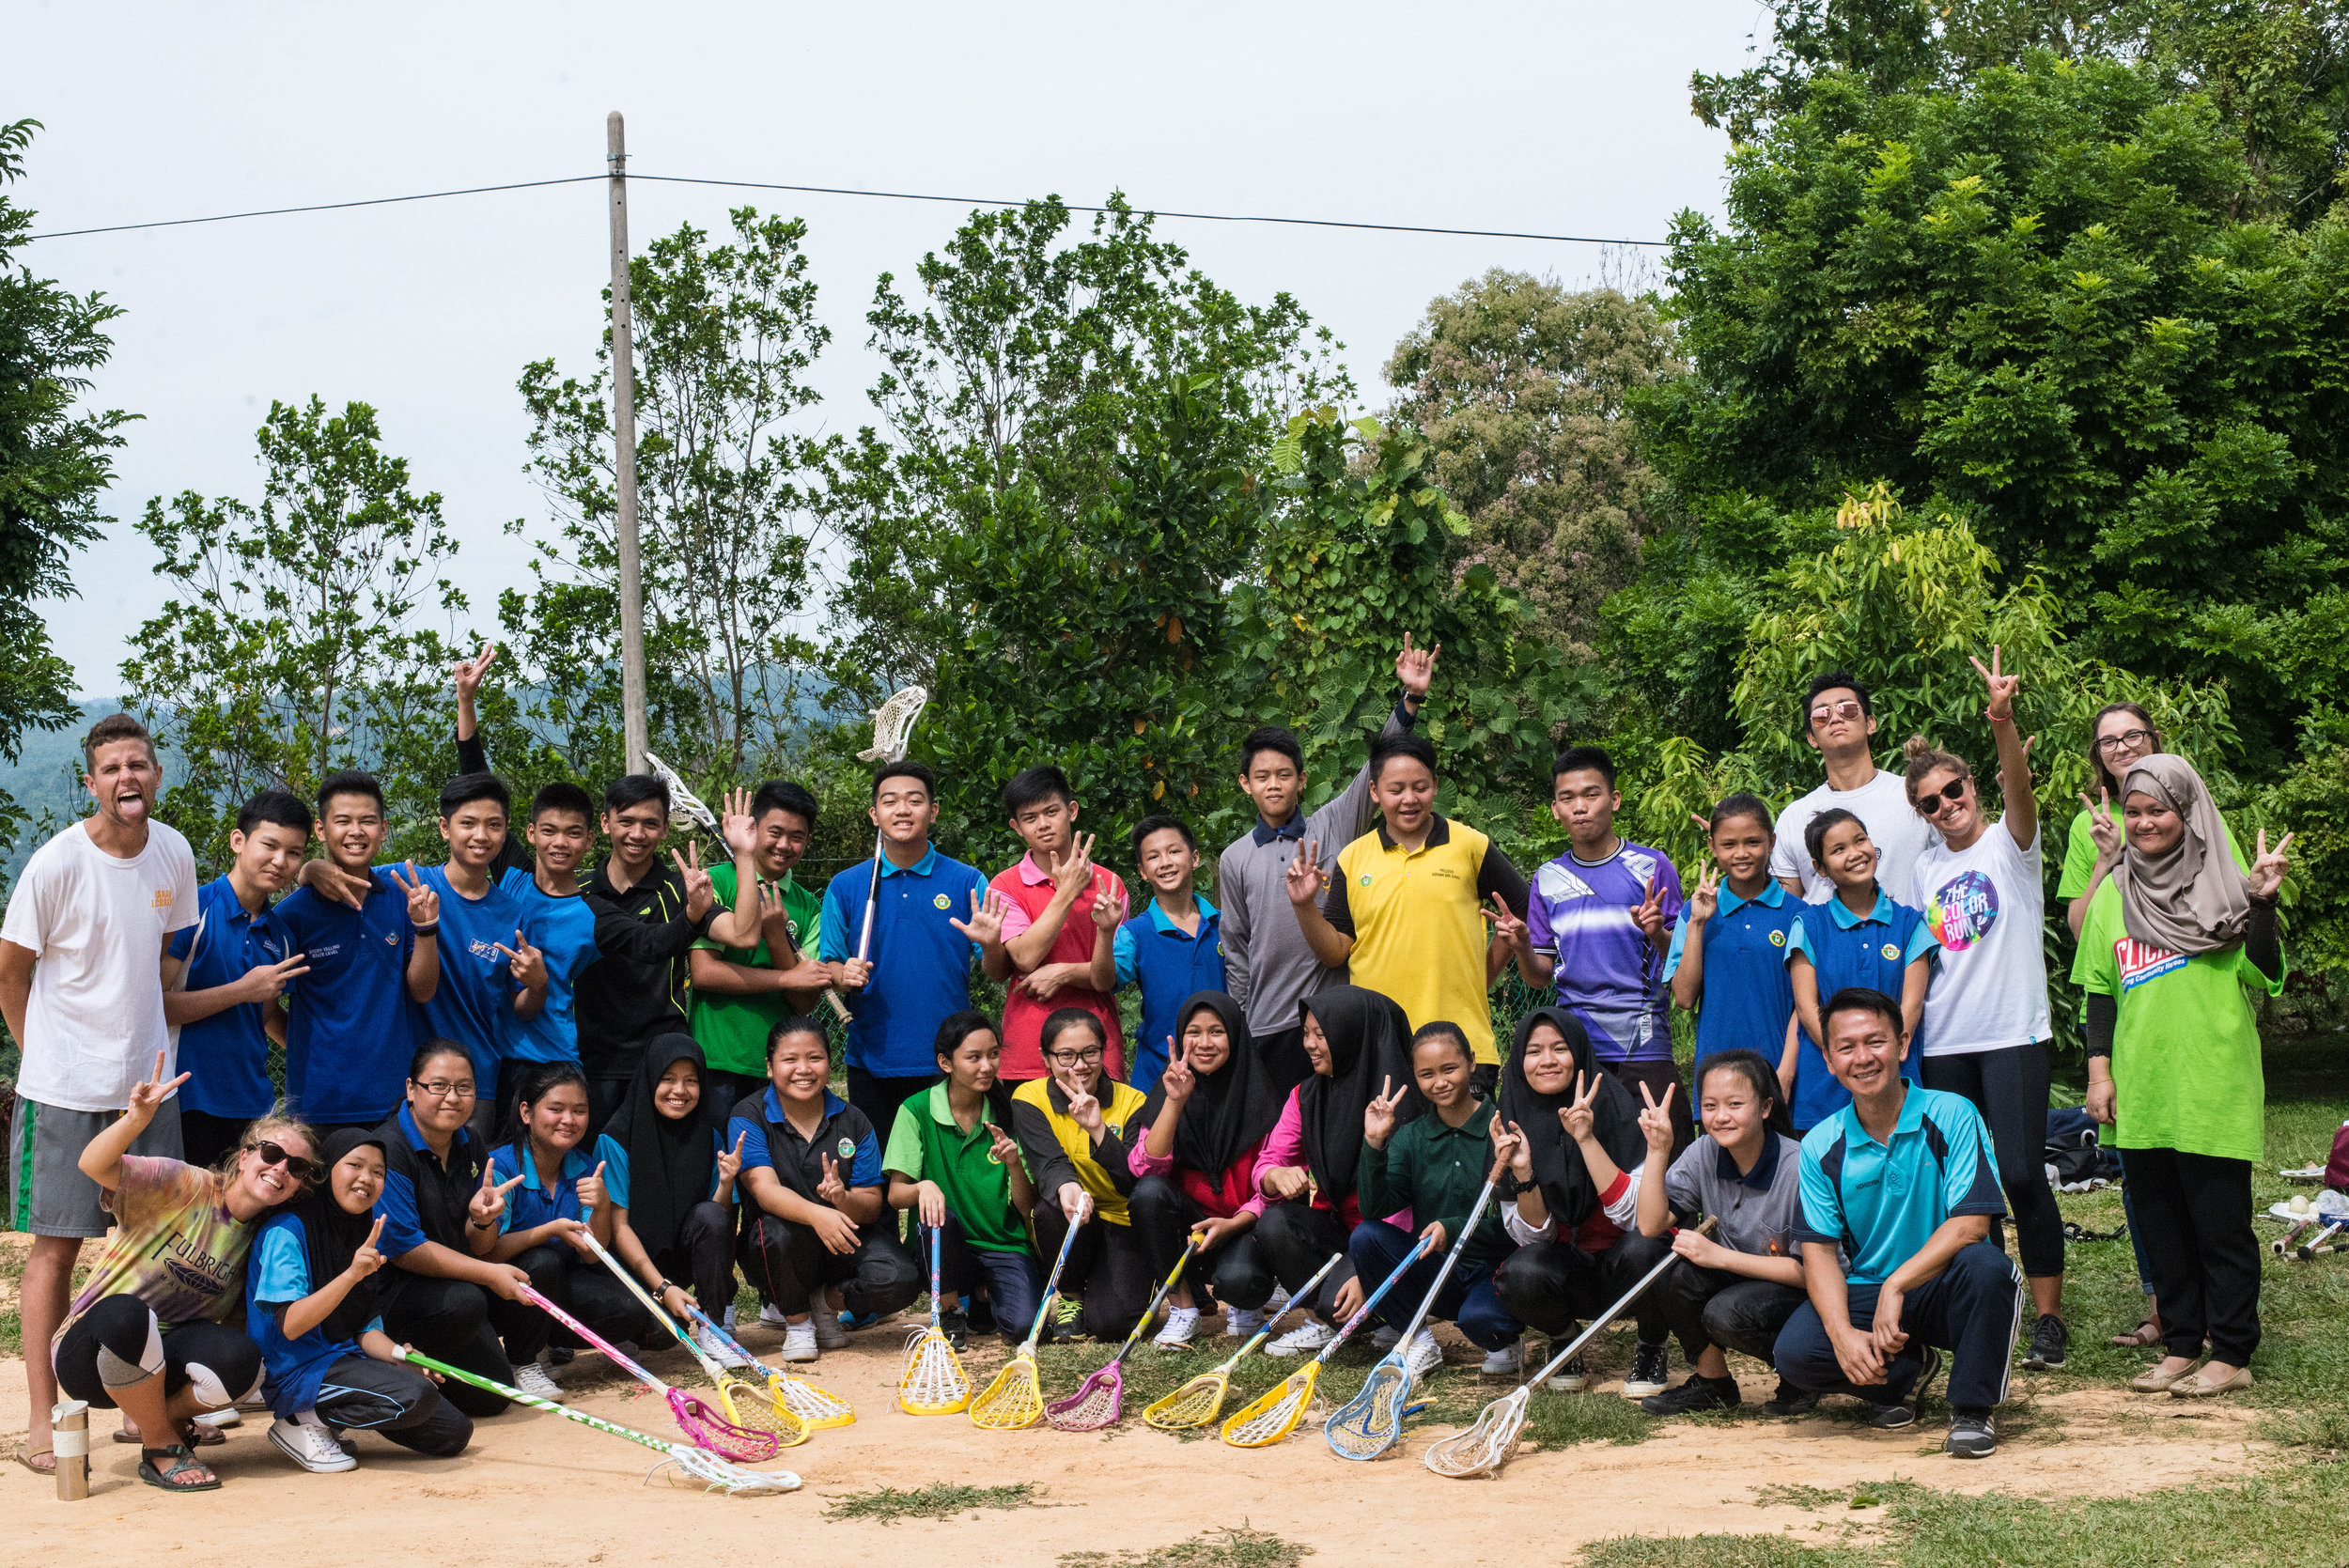 SMK Ranau lacrosse club students and faculty